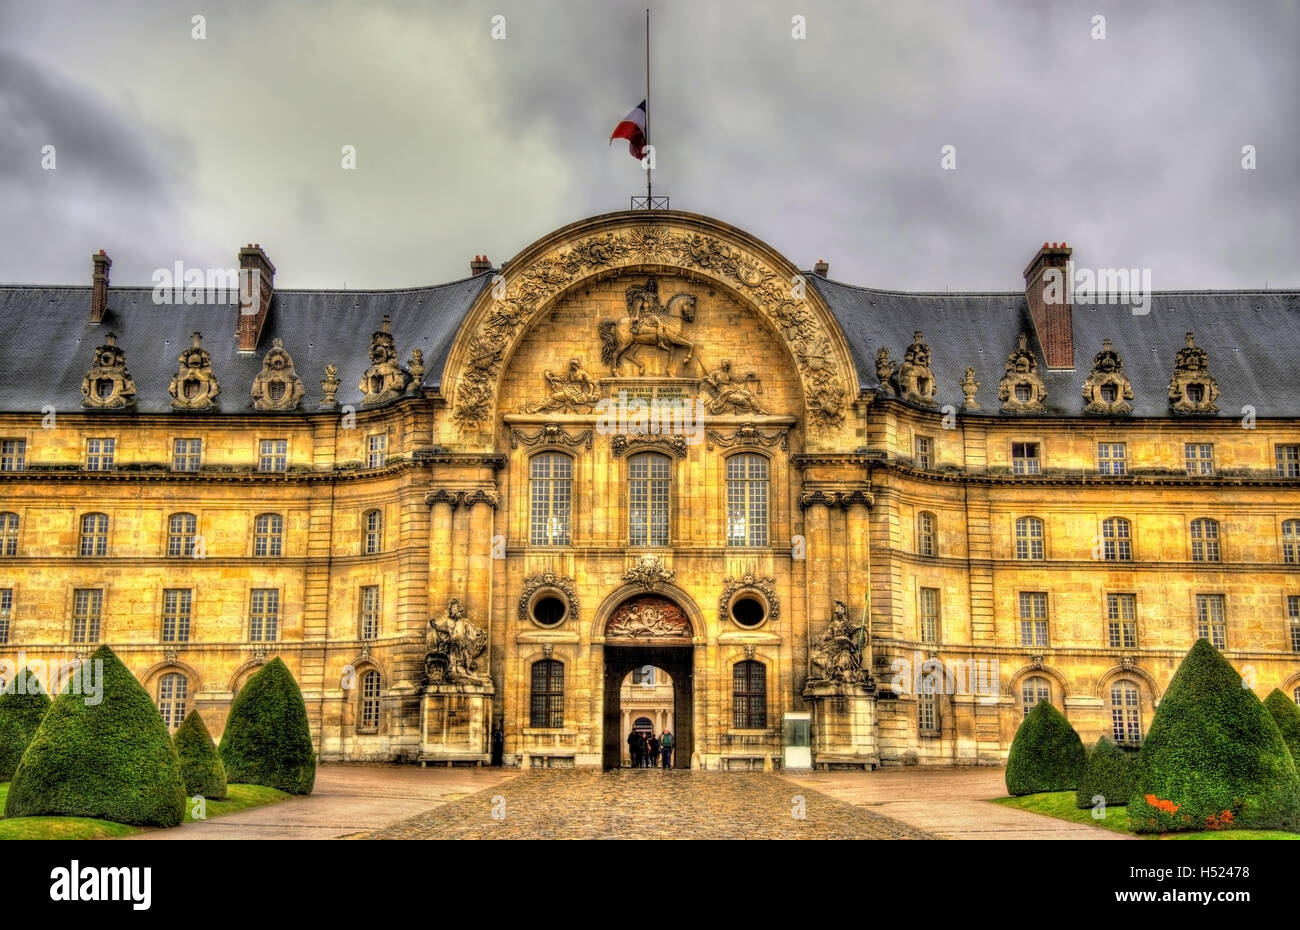 Entrance to Les Invalides in Paris, France - Stock Image